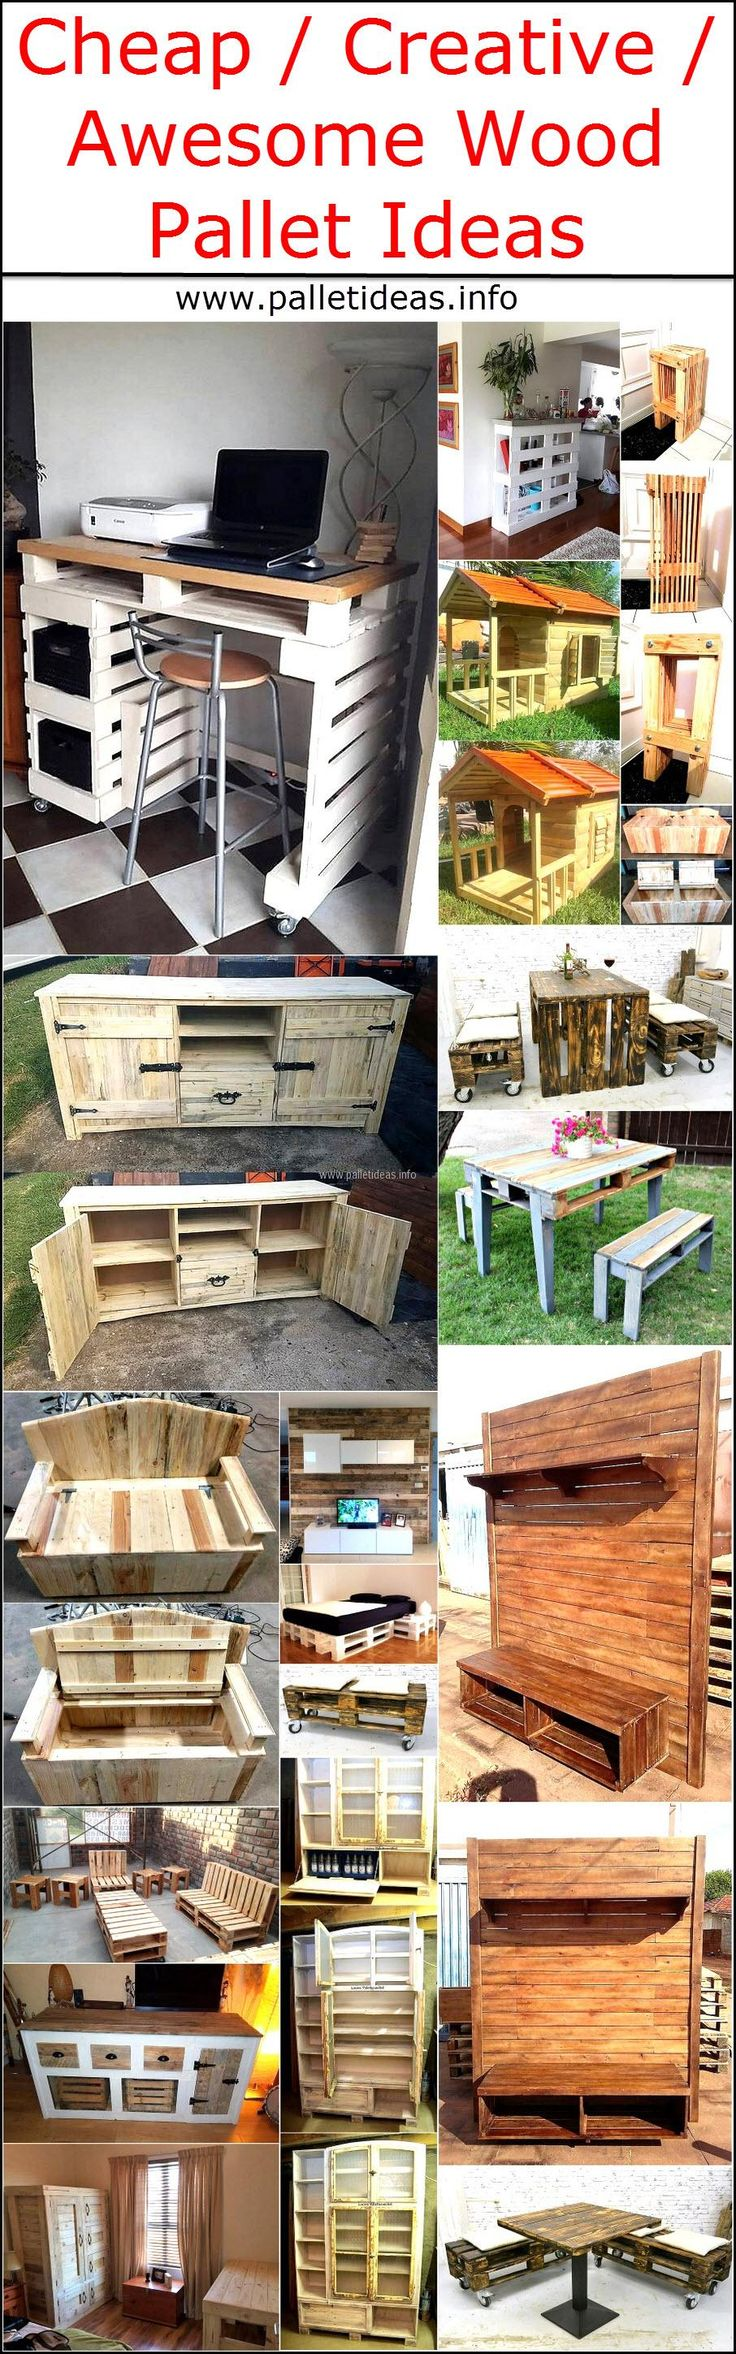 Cheap Creative Awesome Wood Pallet